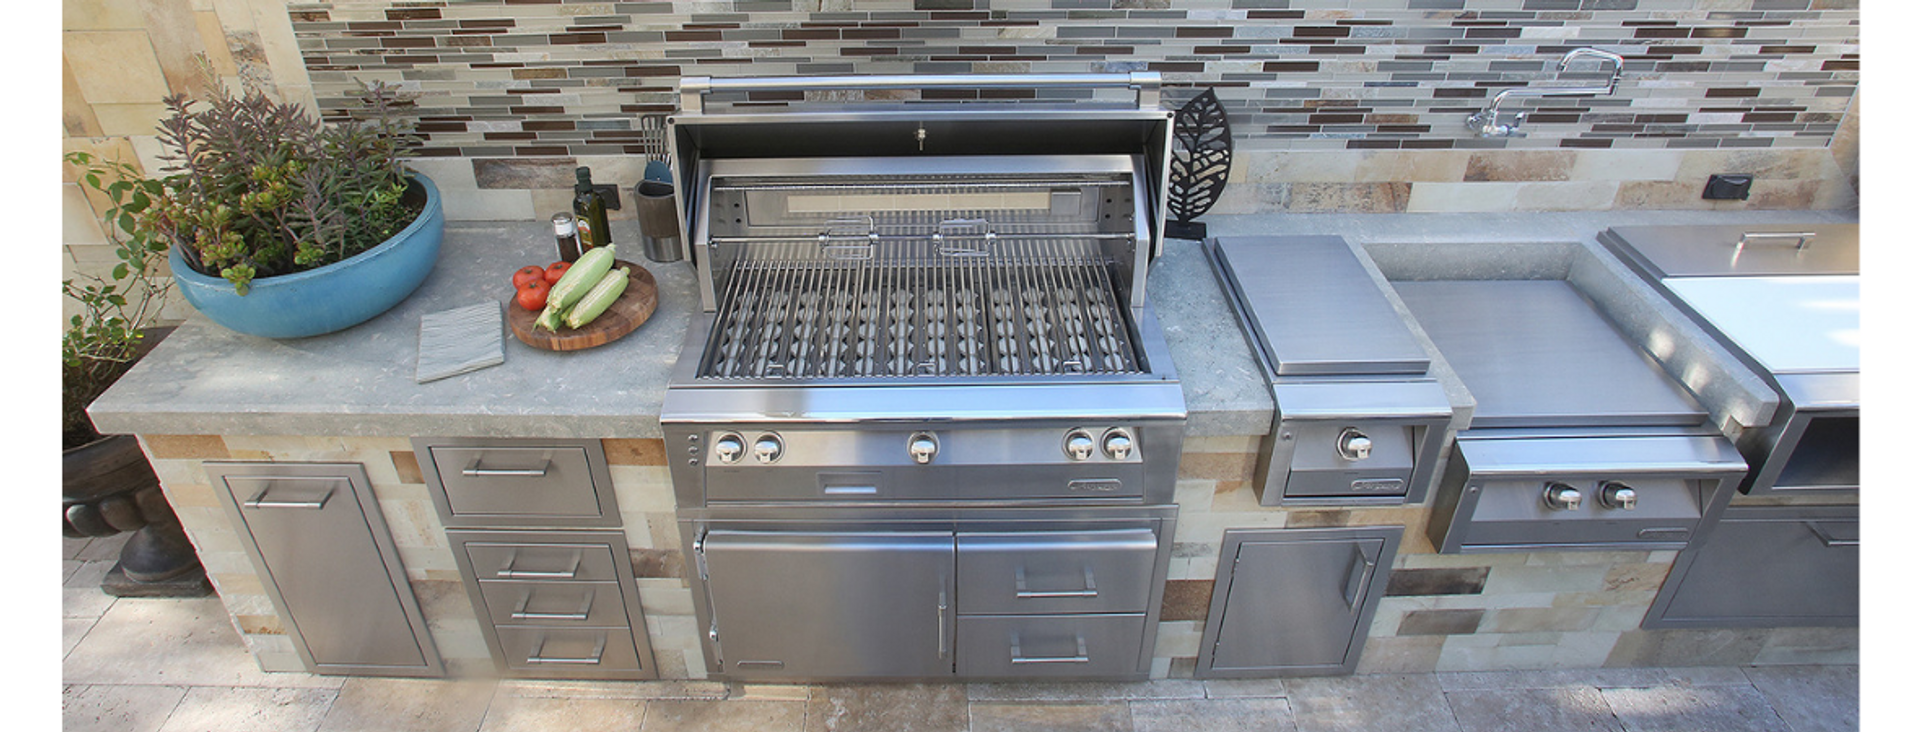 247grills com - Don't Just Cook It, Grill It!